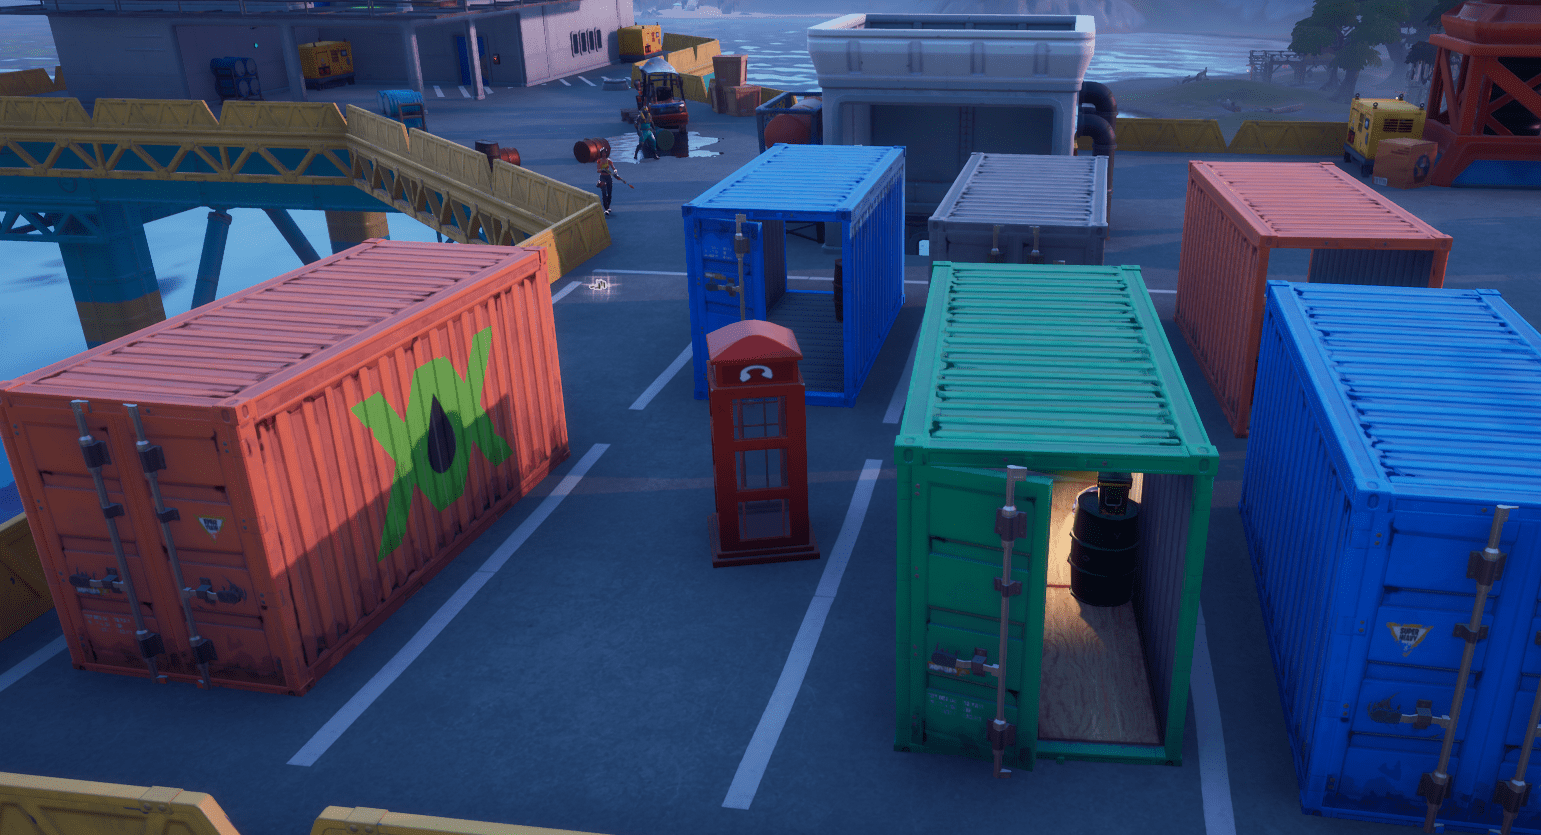 Fortnite Phone Booth Locations - The Rig Containers